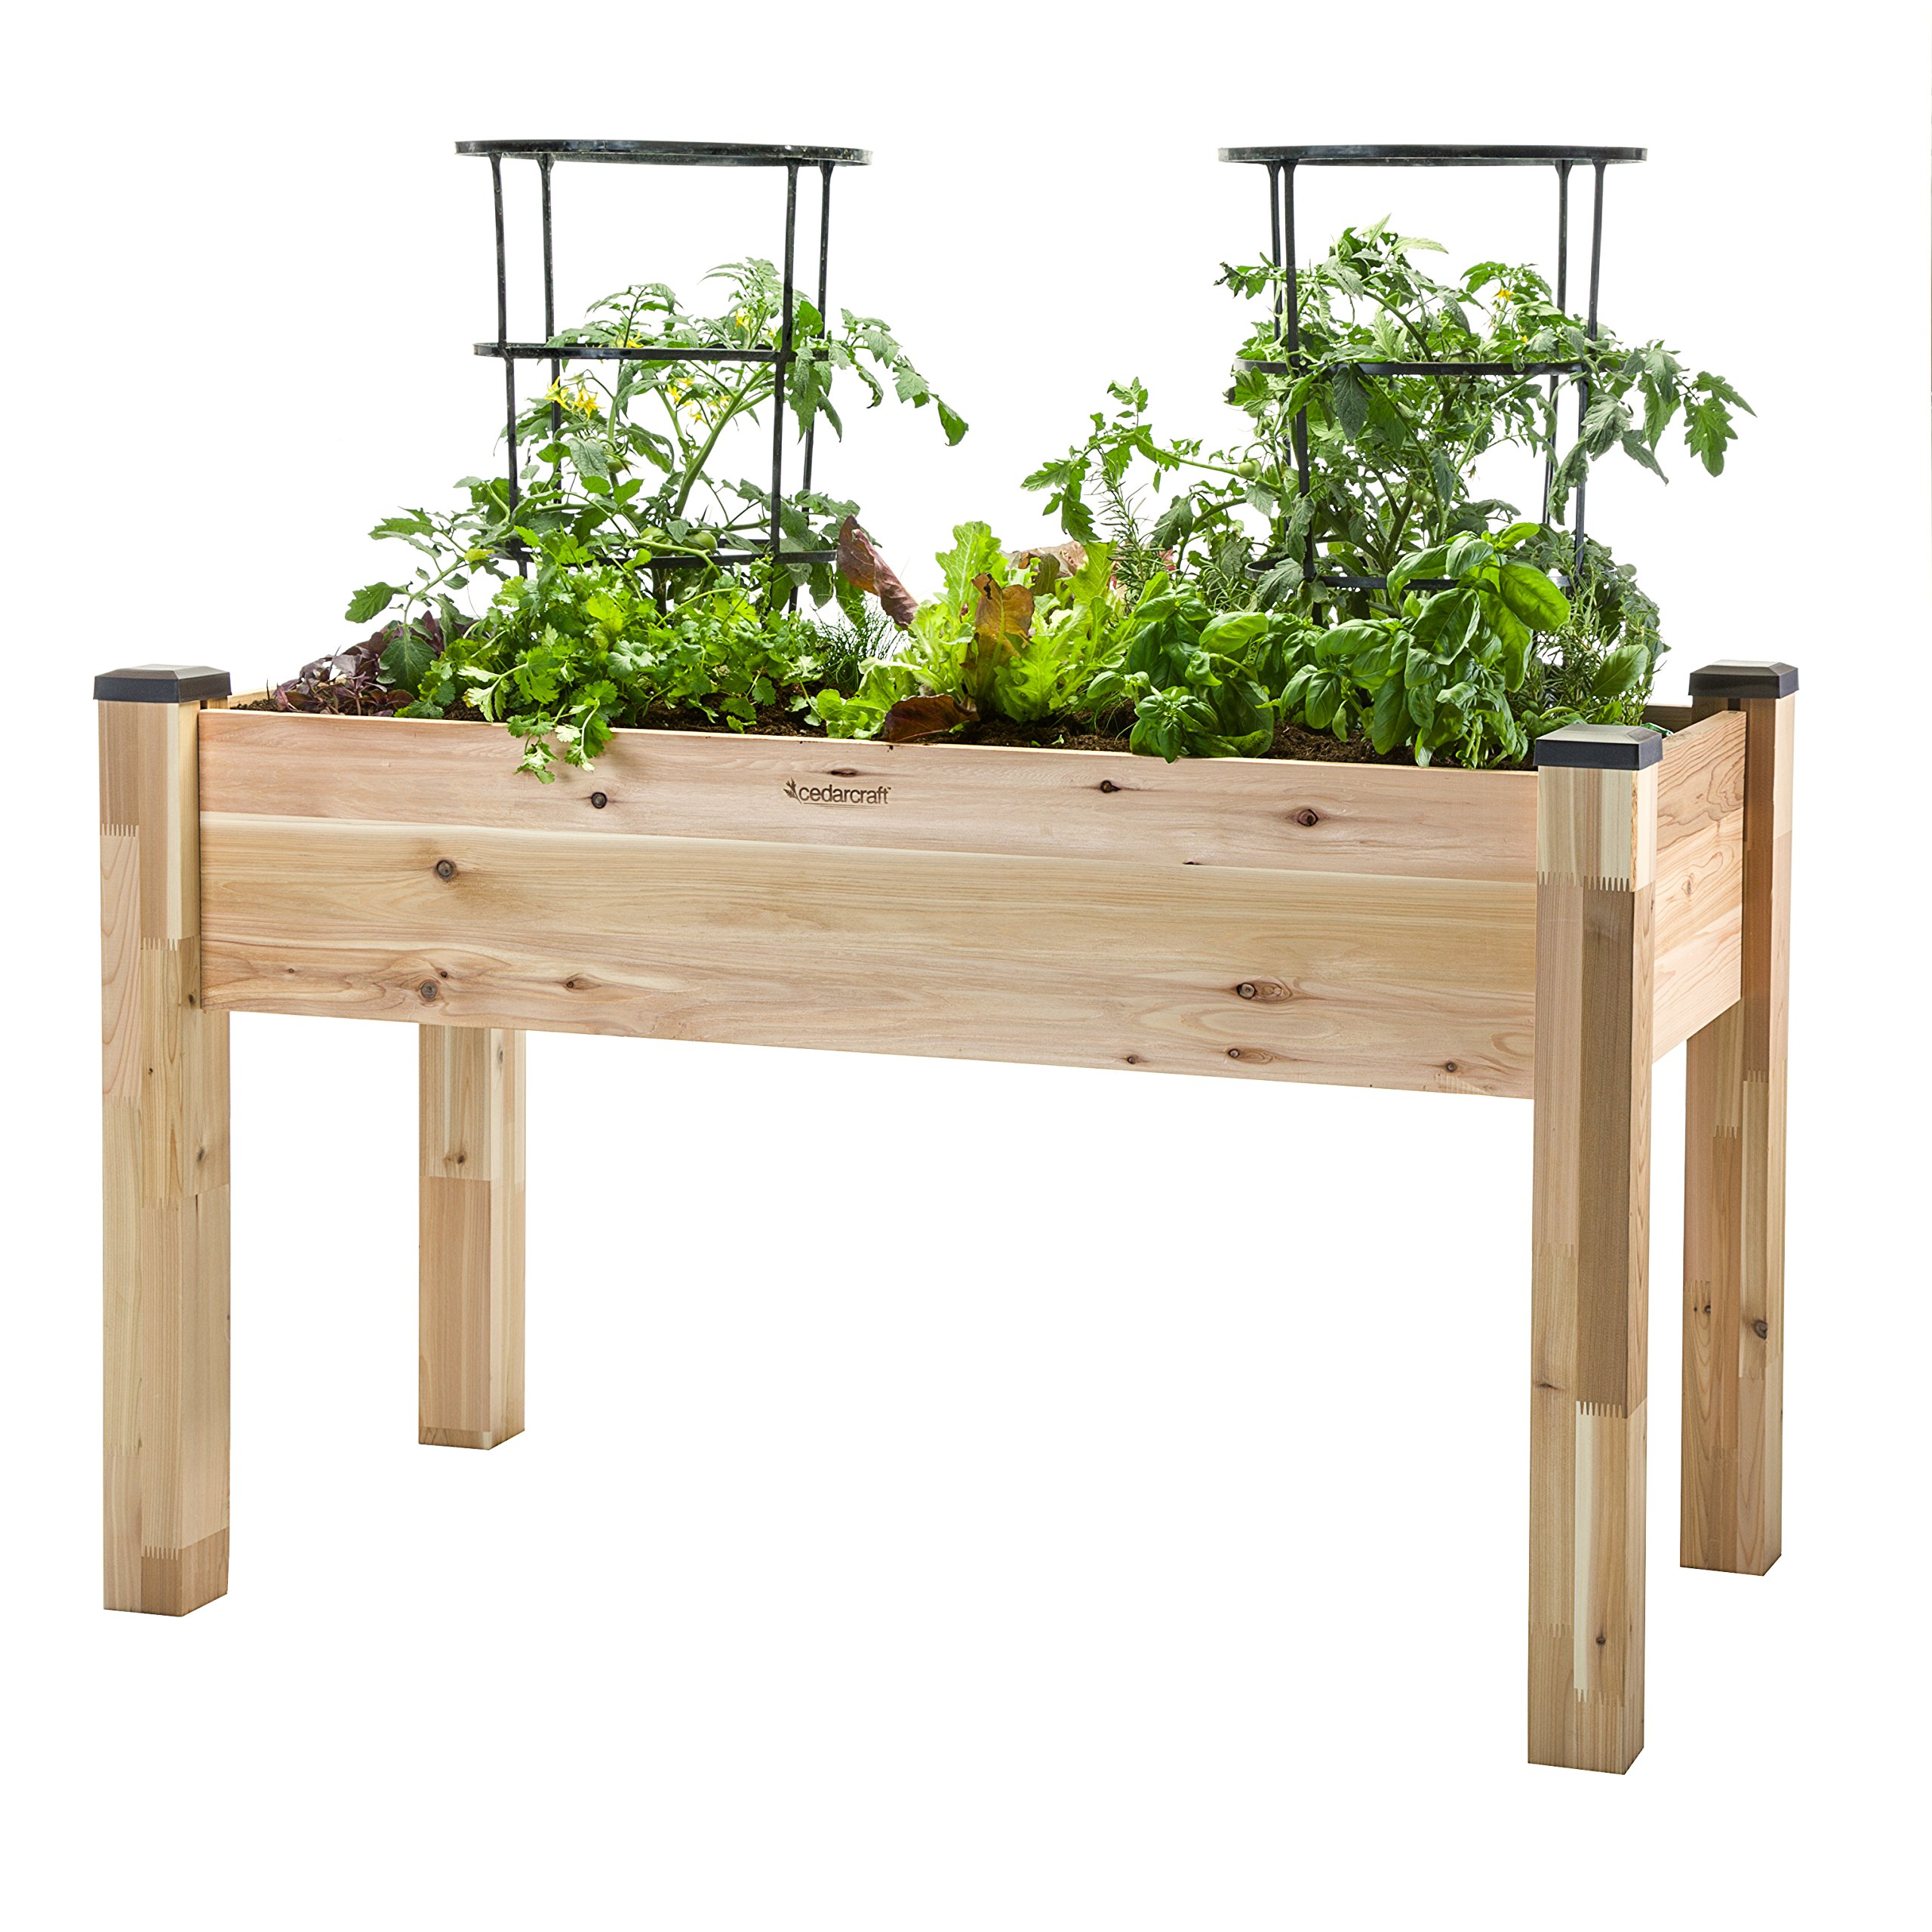 CedarCraft Elevated Garden Planter (23'' X 49'' X 30'')